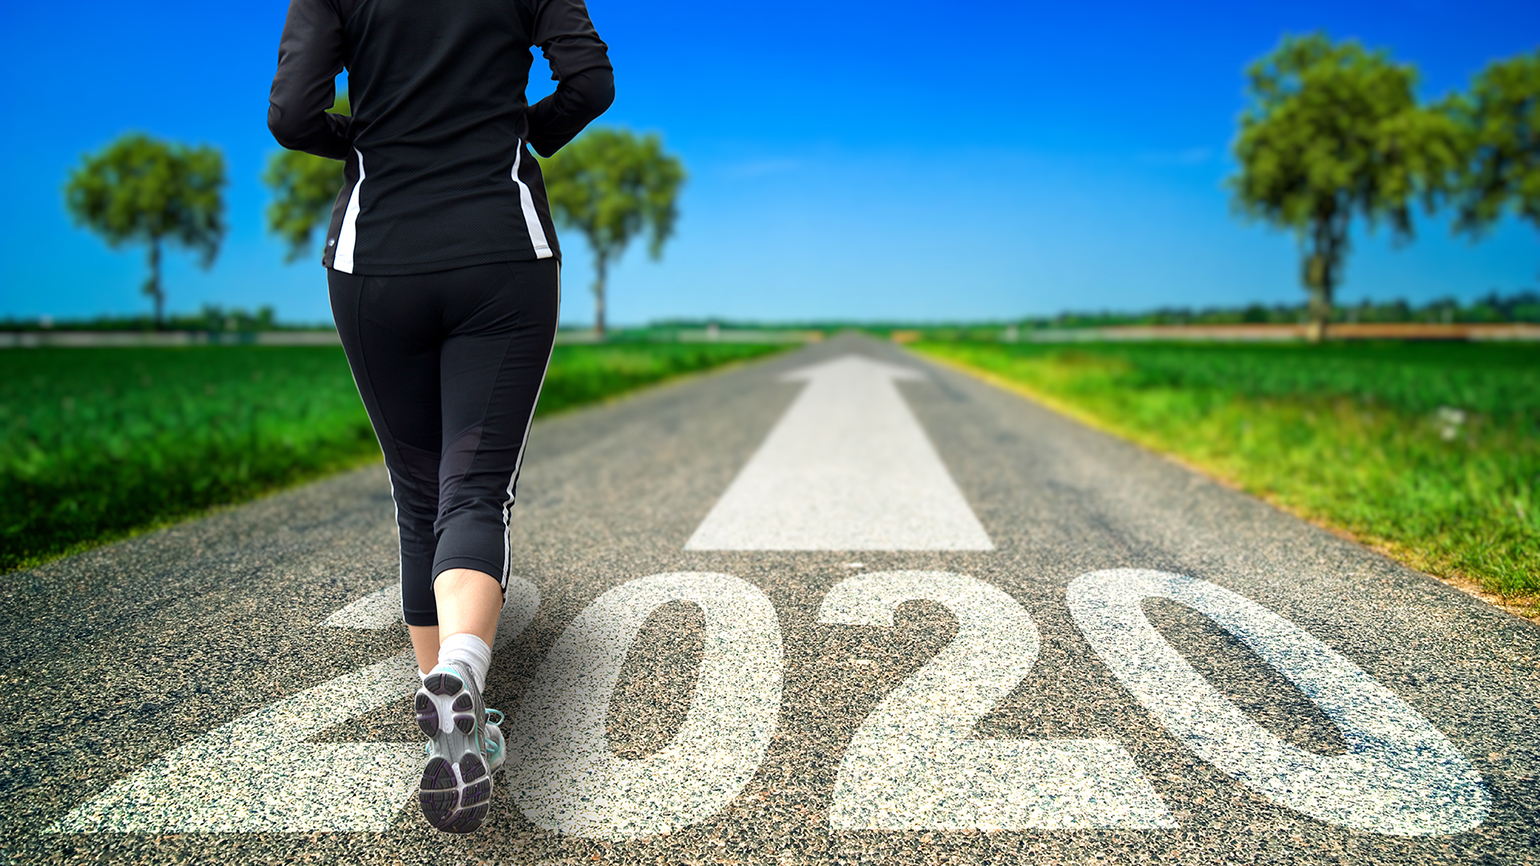 A woman sets out on a run to start the new year